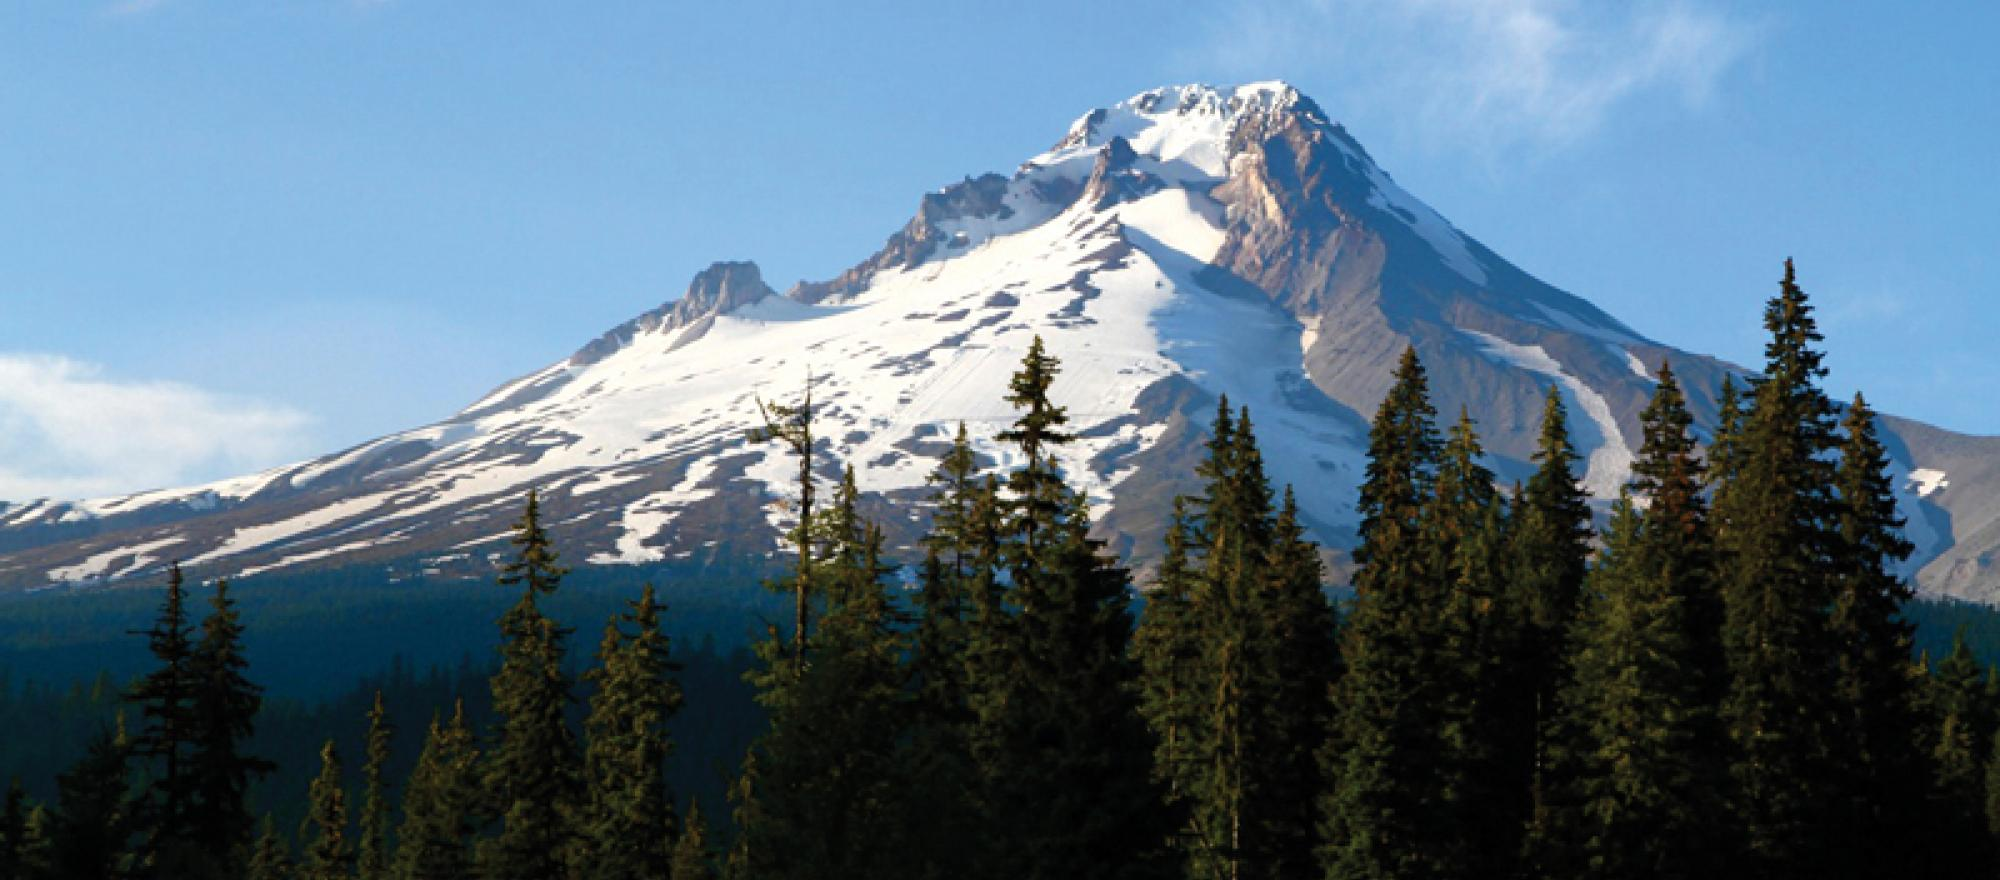 Oregon's Mount Bachelor